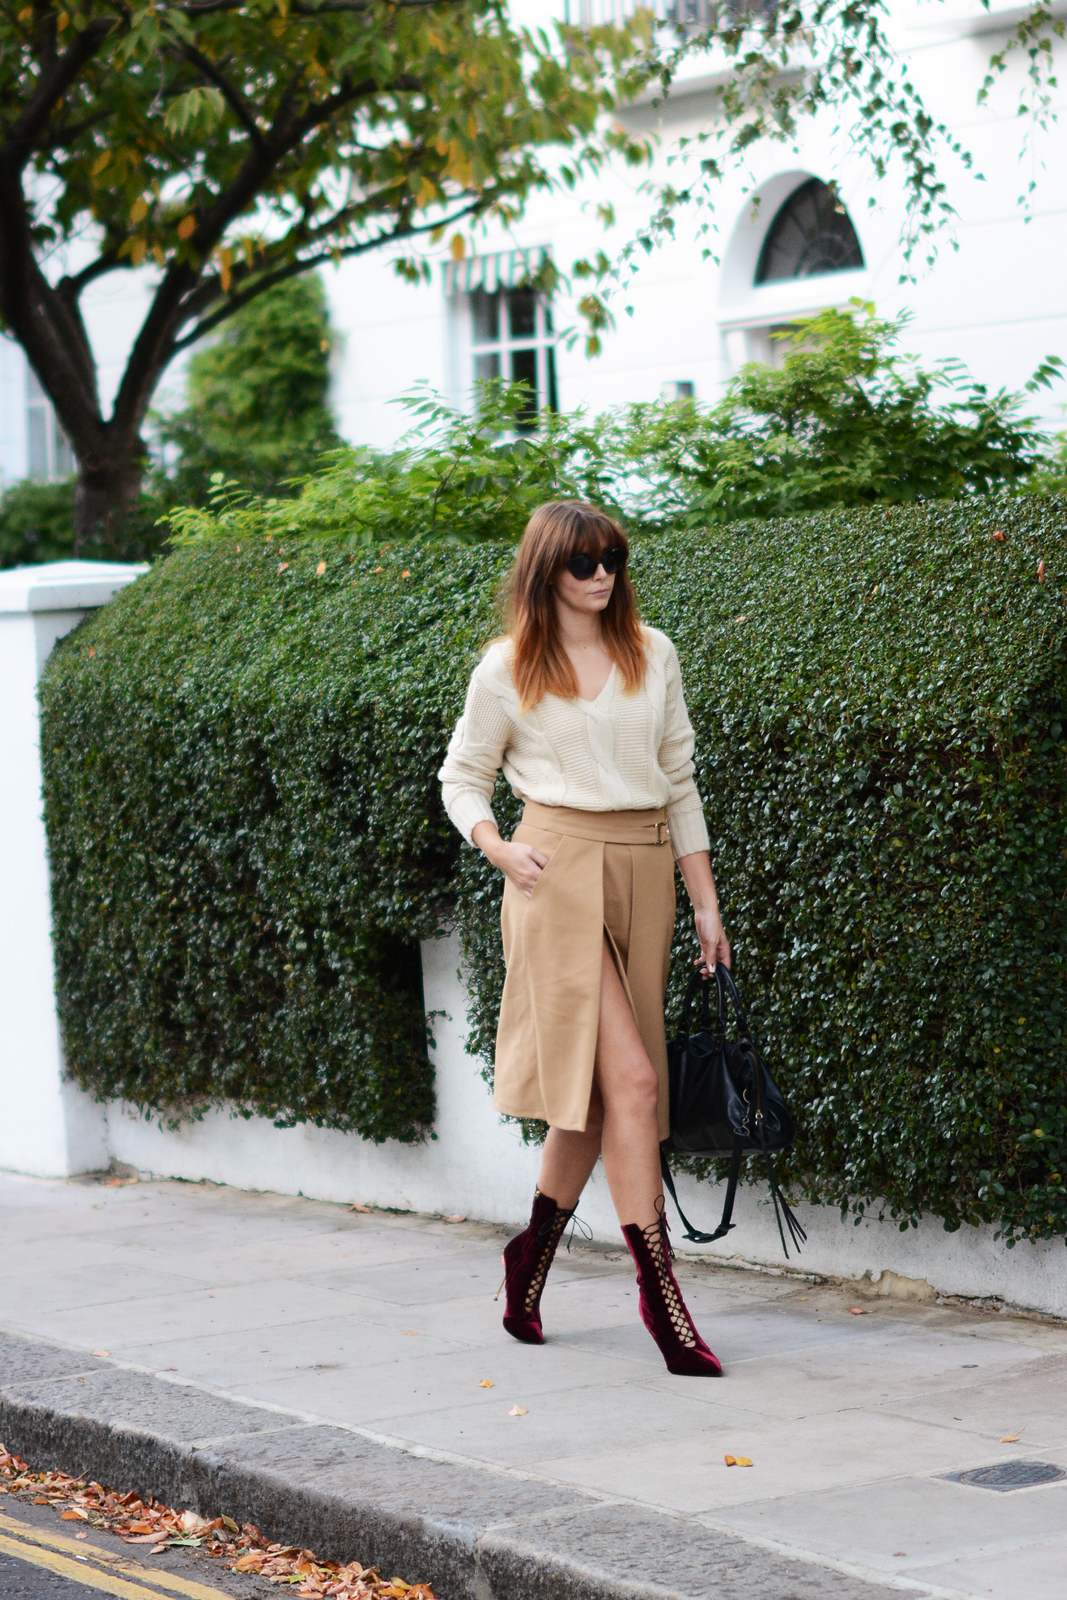 EJSTYLE - OOTD Zara Camel wrap skirt with buckles, chunky cream knitted sweater jumper, Balenciaga motorcycle le dix bag, Kurt Geiger lace up velvet boots metal heel, cat eye sunglasses